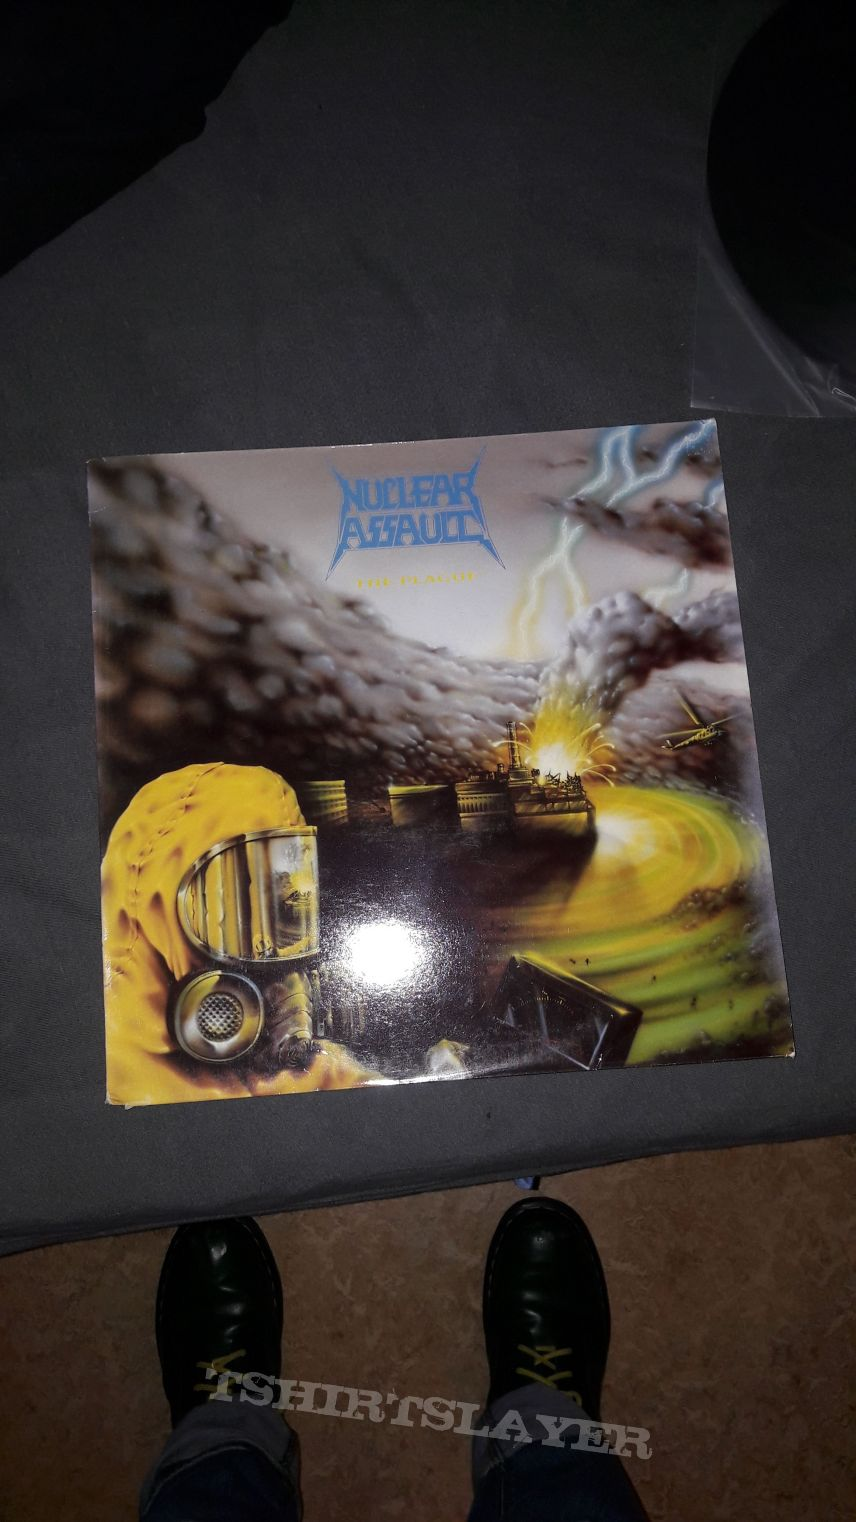 Nuclear Assault The Plague Vinyl